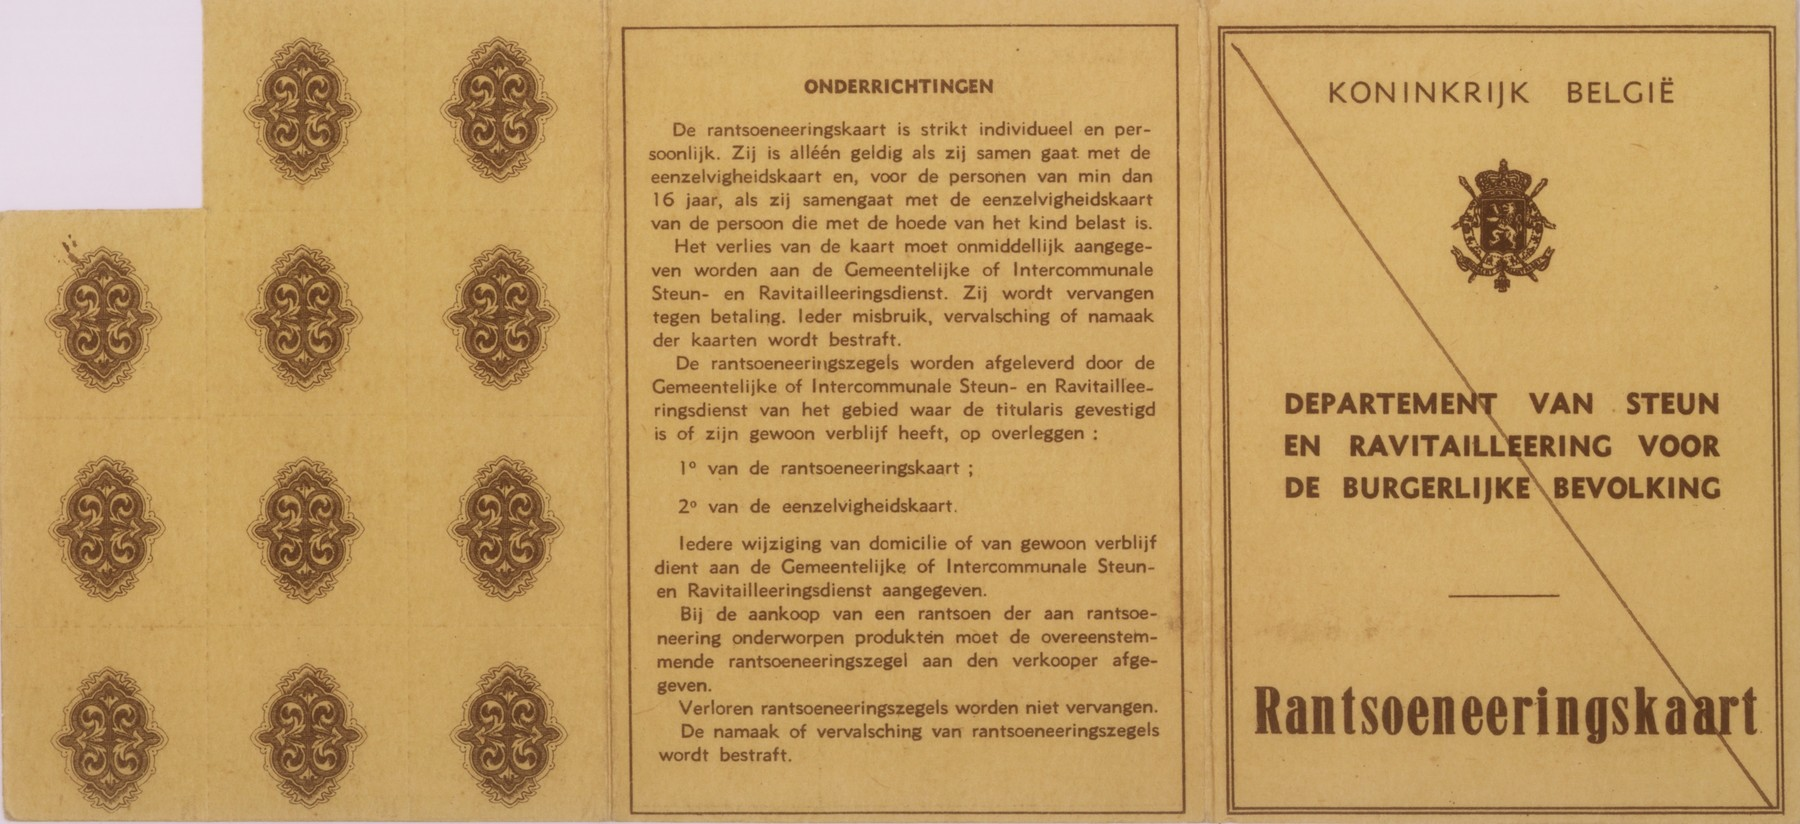 Ration card issued to Joseph Schadur, a Jewish refugee living in Antwerp.